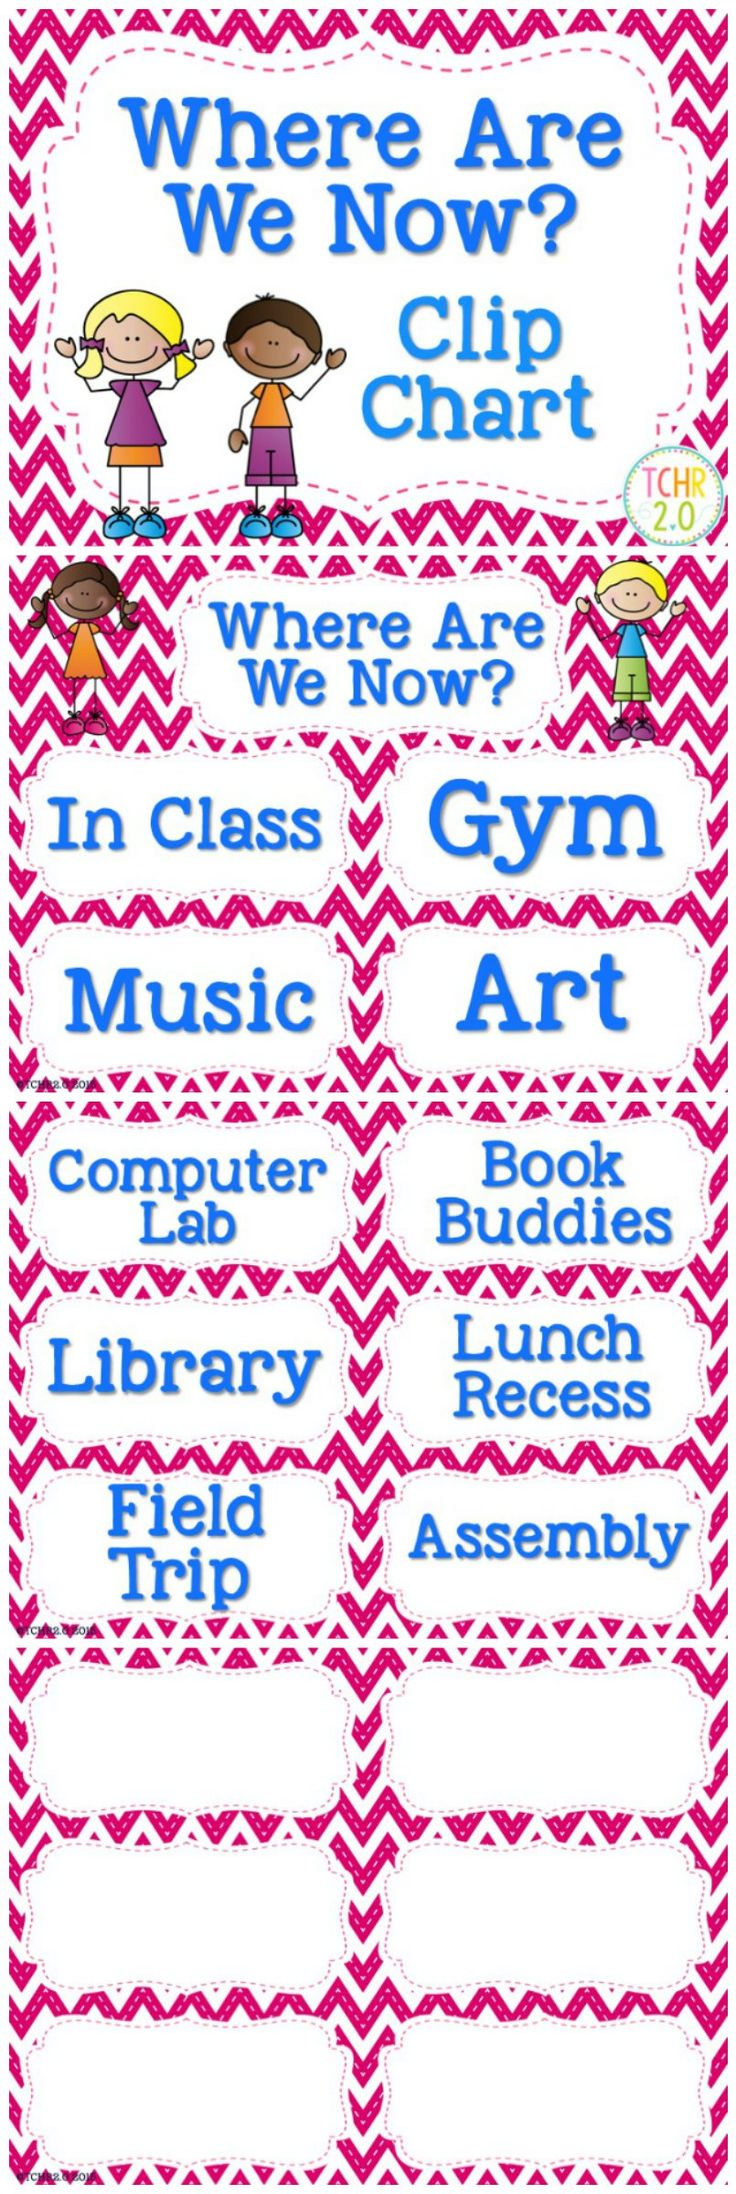 Let others in your school community know what your class is up to. Just post this outside your classroom and mark your location with a clip. This includes a blank editable page in case you need to change something. Font is KG Next to Me Solid.